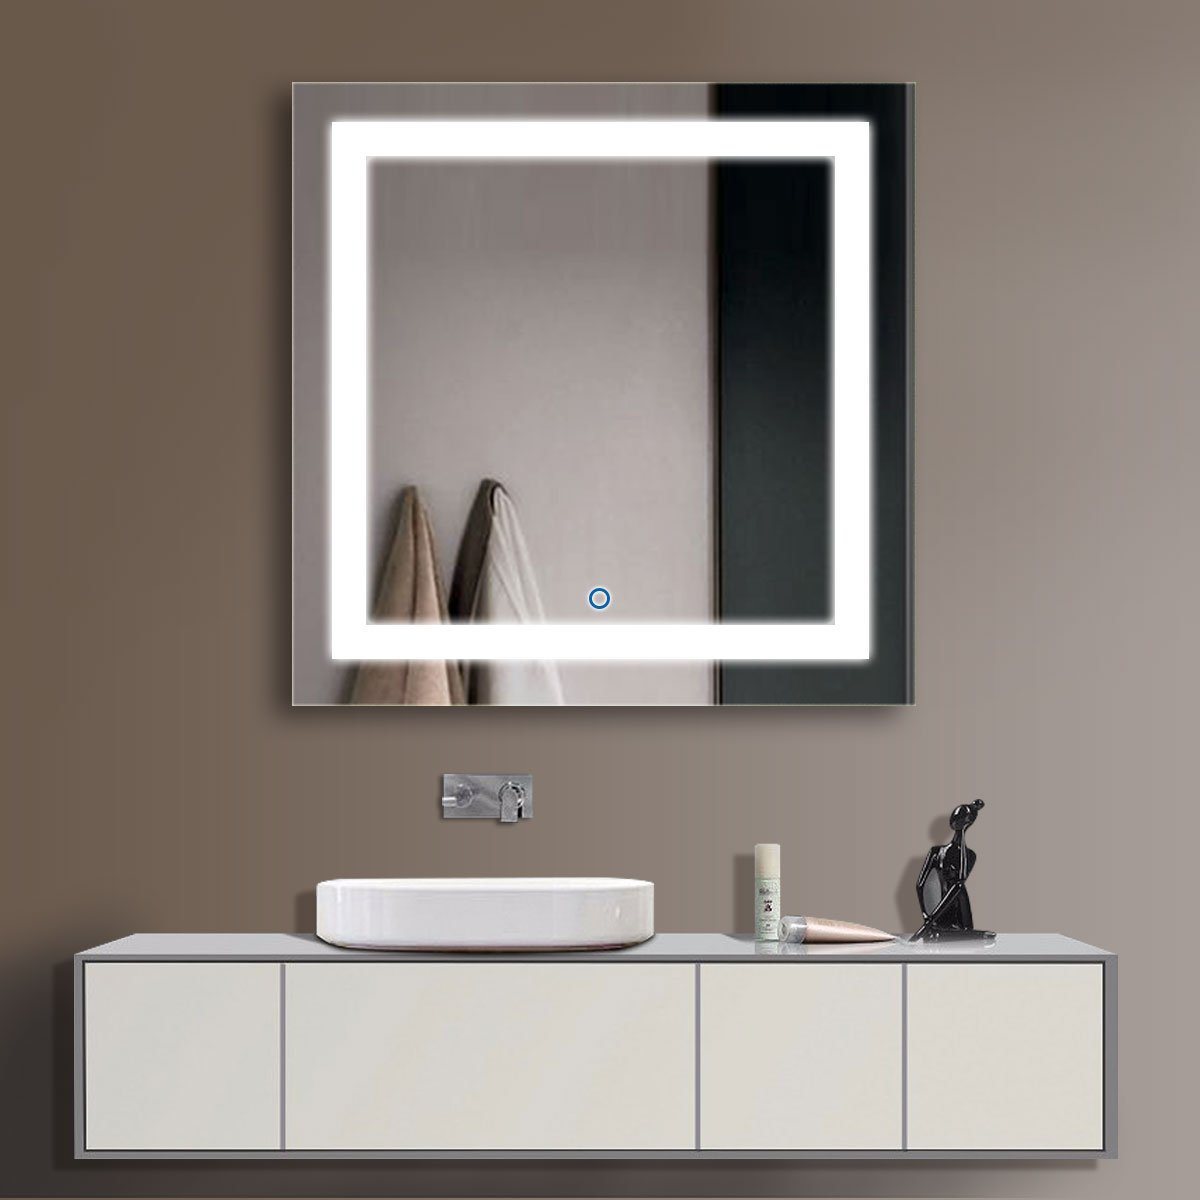 D-HYH 36 x 36 In LED Bathroom Silvered Mirror with Touch Button D-CK168-E